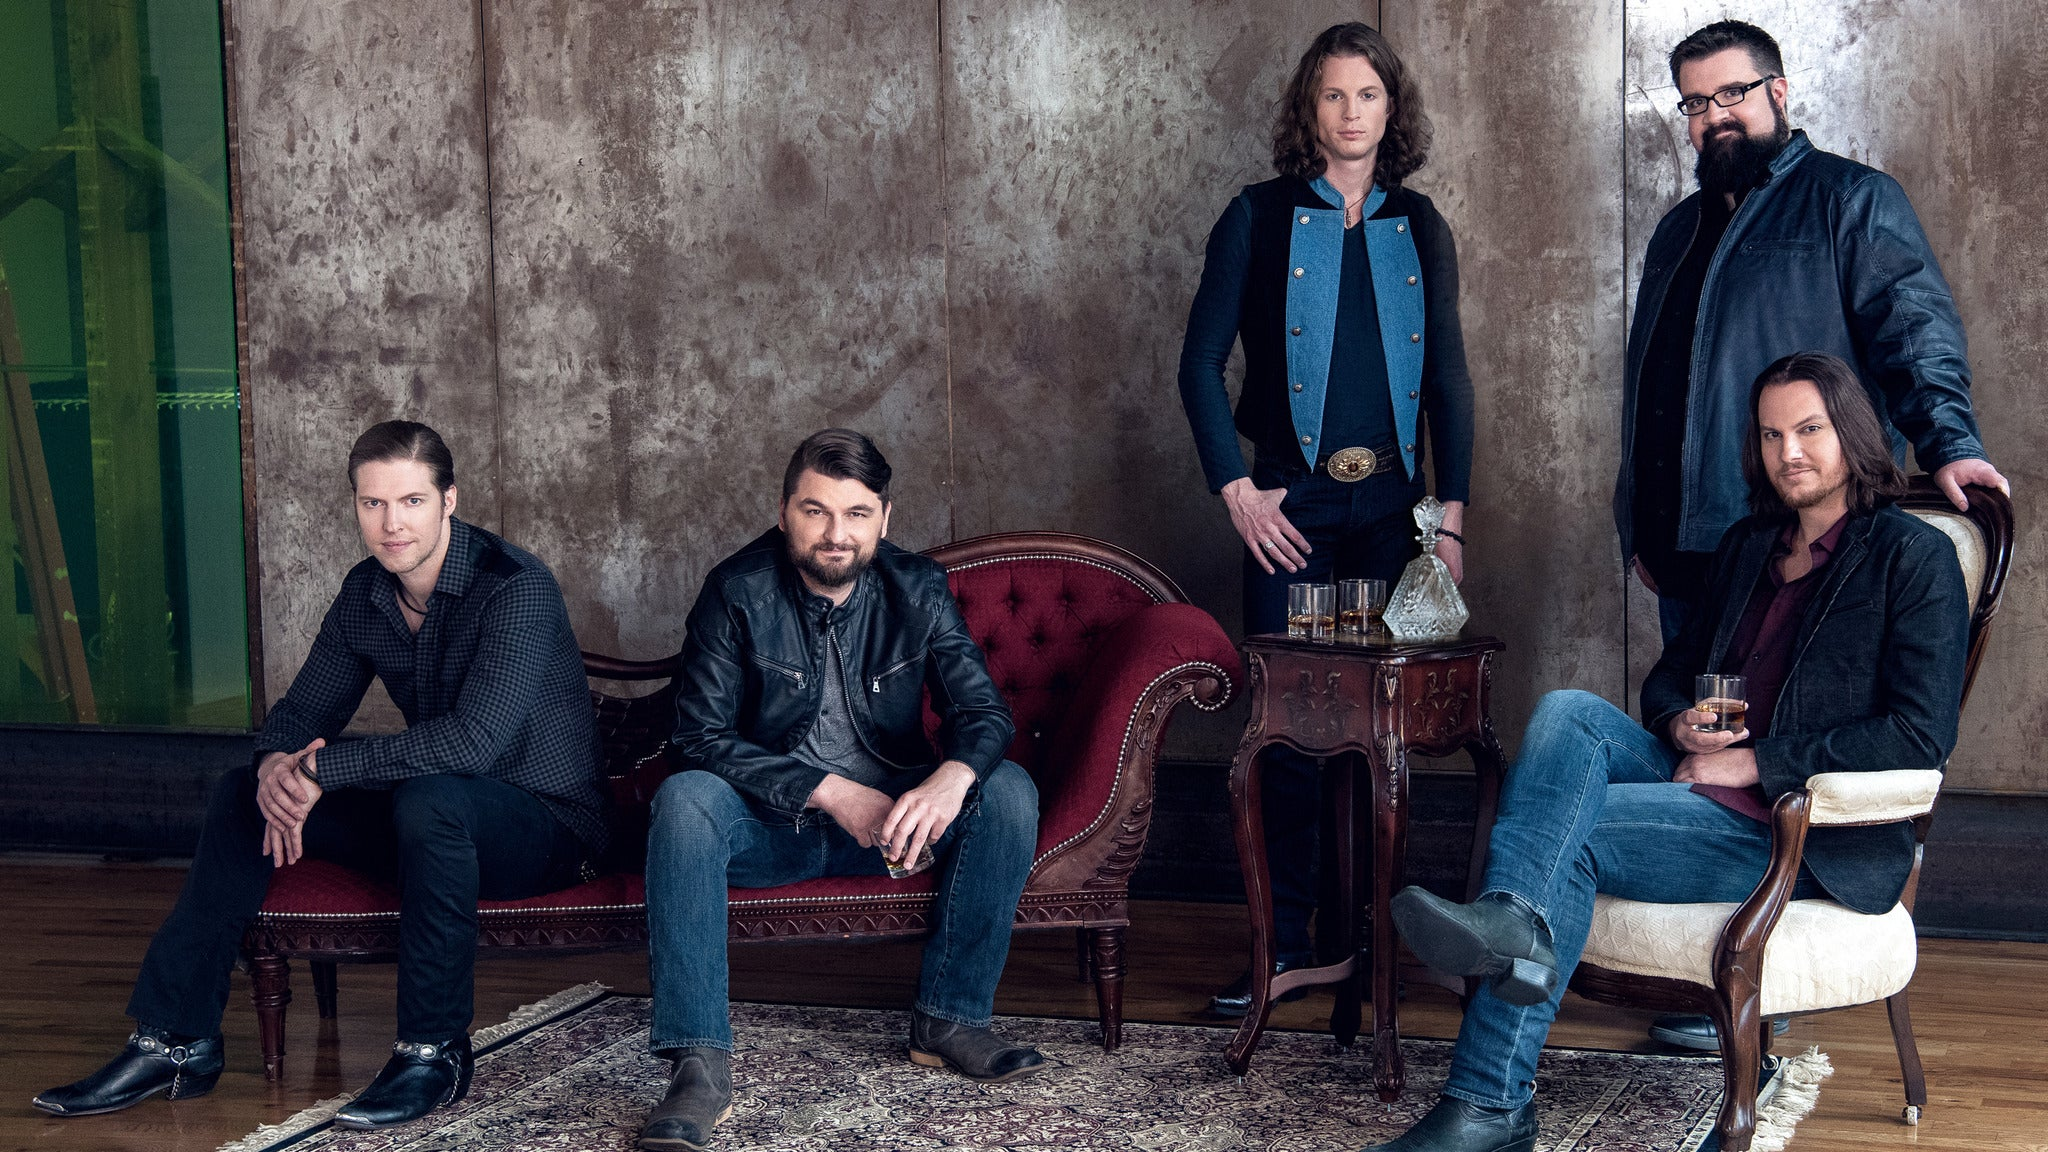 Home Free at Scheels Arena